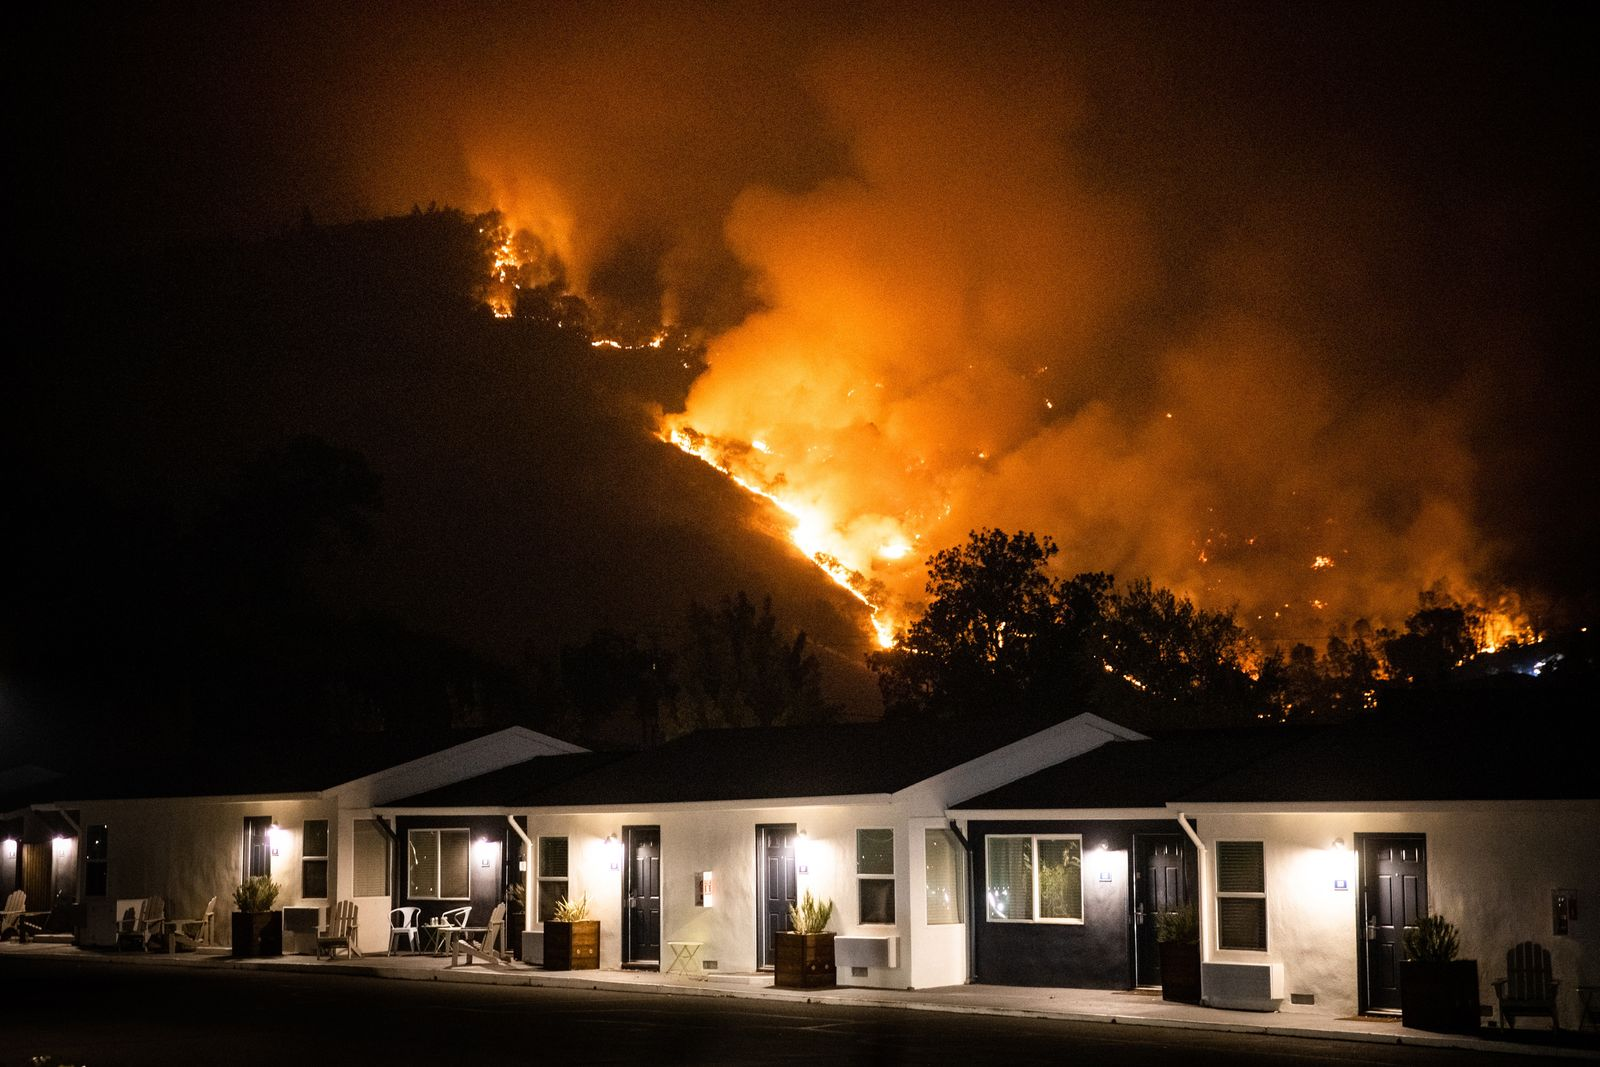 The Glass Fire burns above Calistoga, Calif, near residences early Tuesday, Sept. 29, 2020. (Max Whittaker/The New York Times)